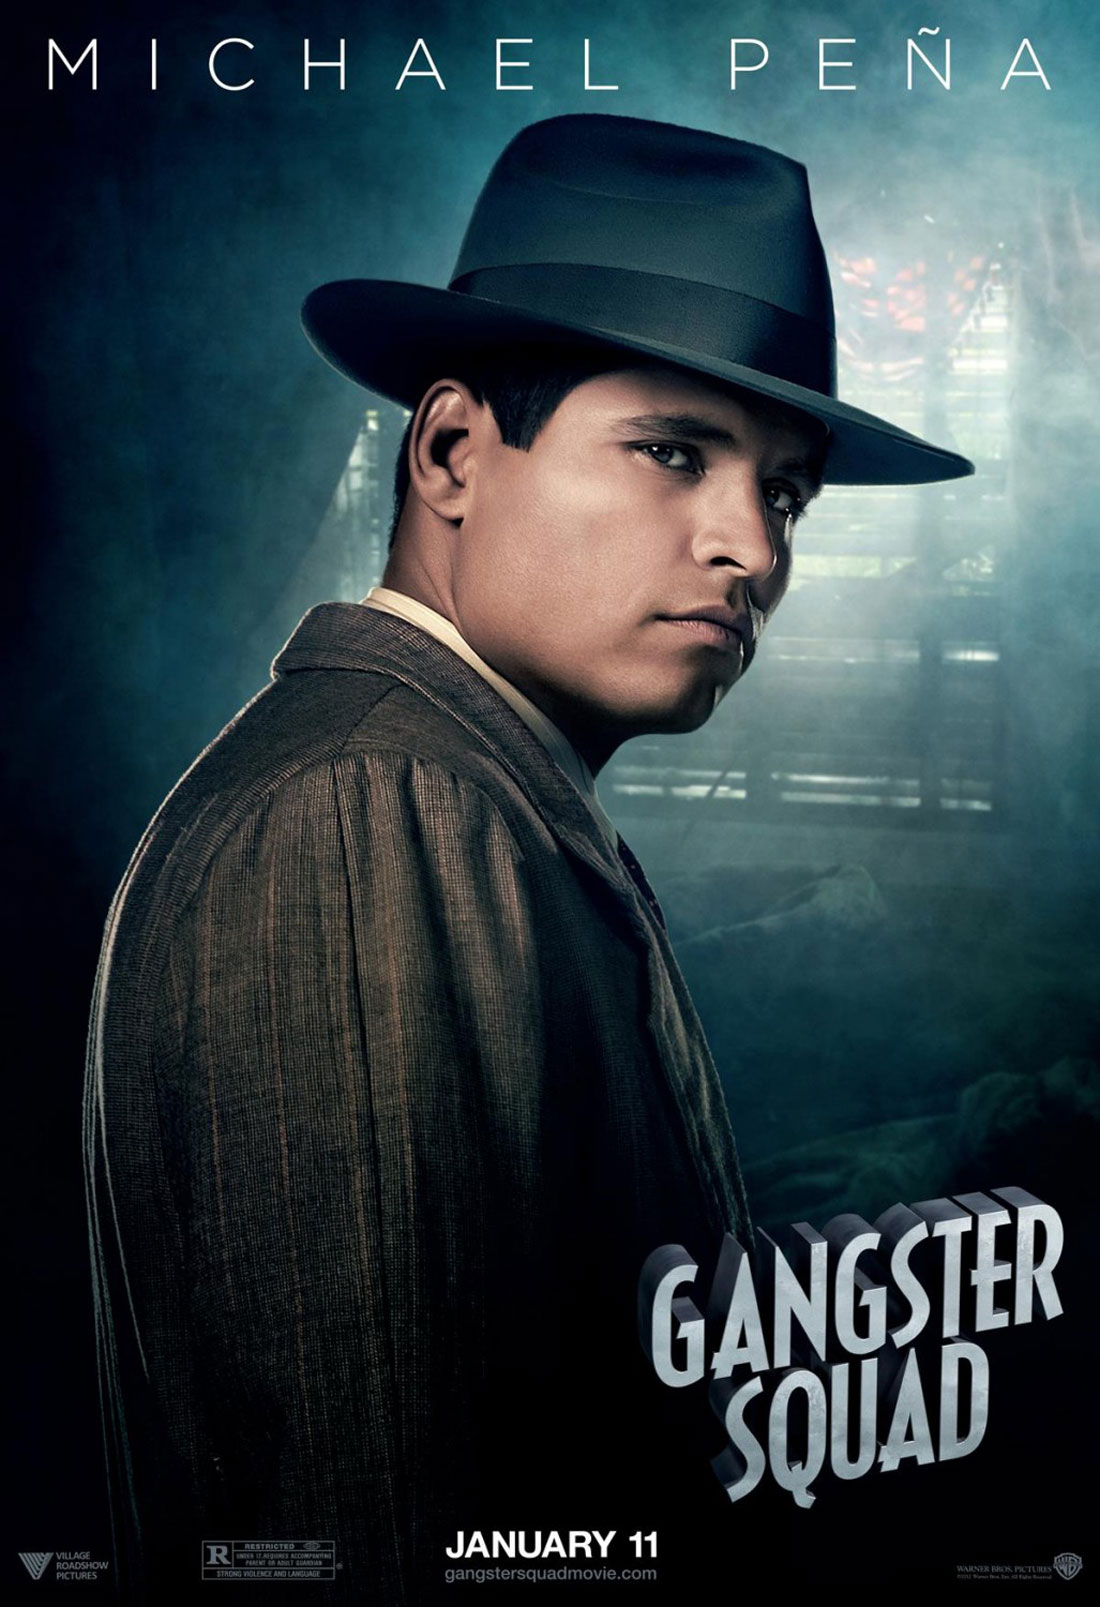 Gangster Squad - Movie Poster #9 (Original)